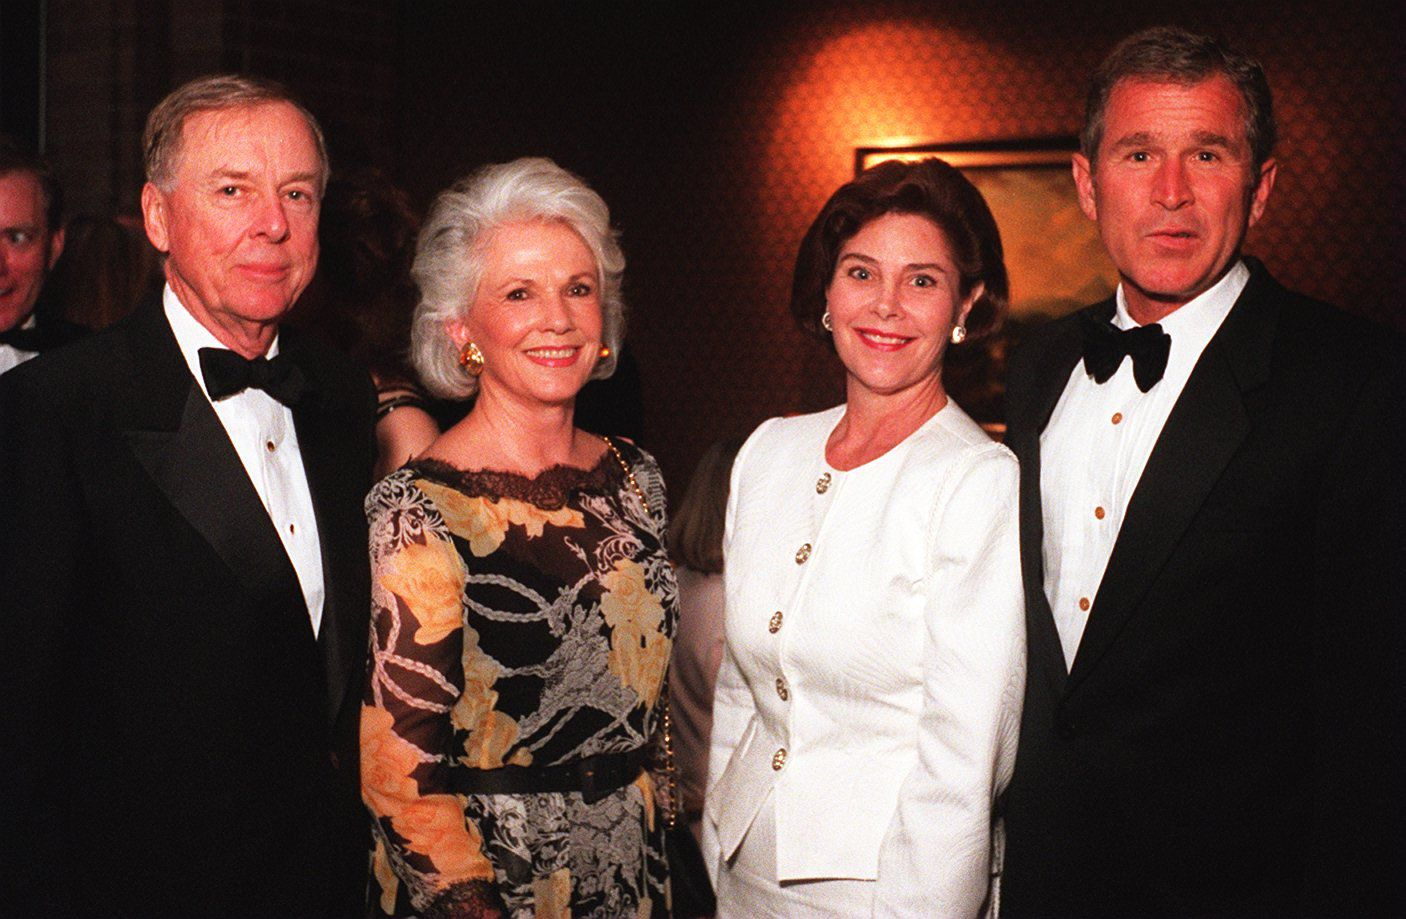 T. Boone Pickens with his second wife, Bea Pickens, with Laura  and Gov. George W. Bush at the Gridiron show benefiting the Press Club of Dallas.